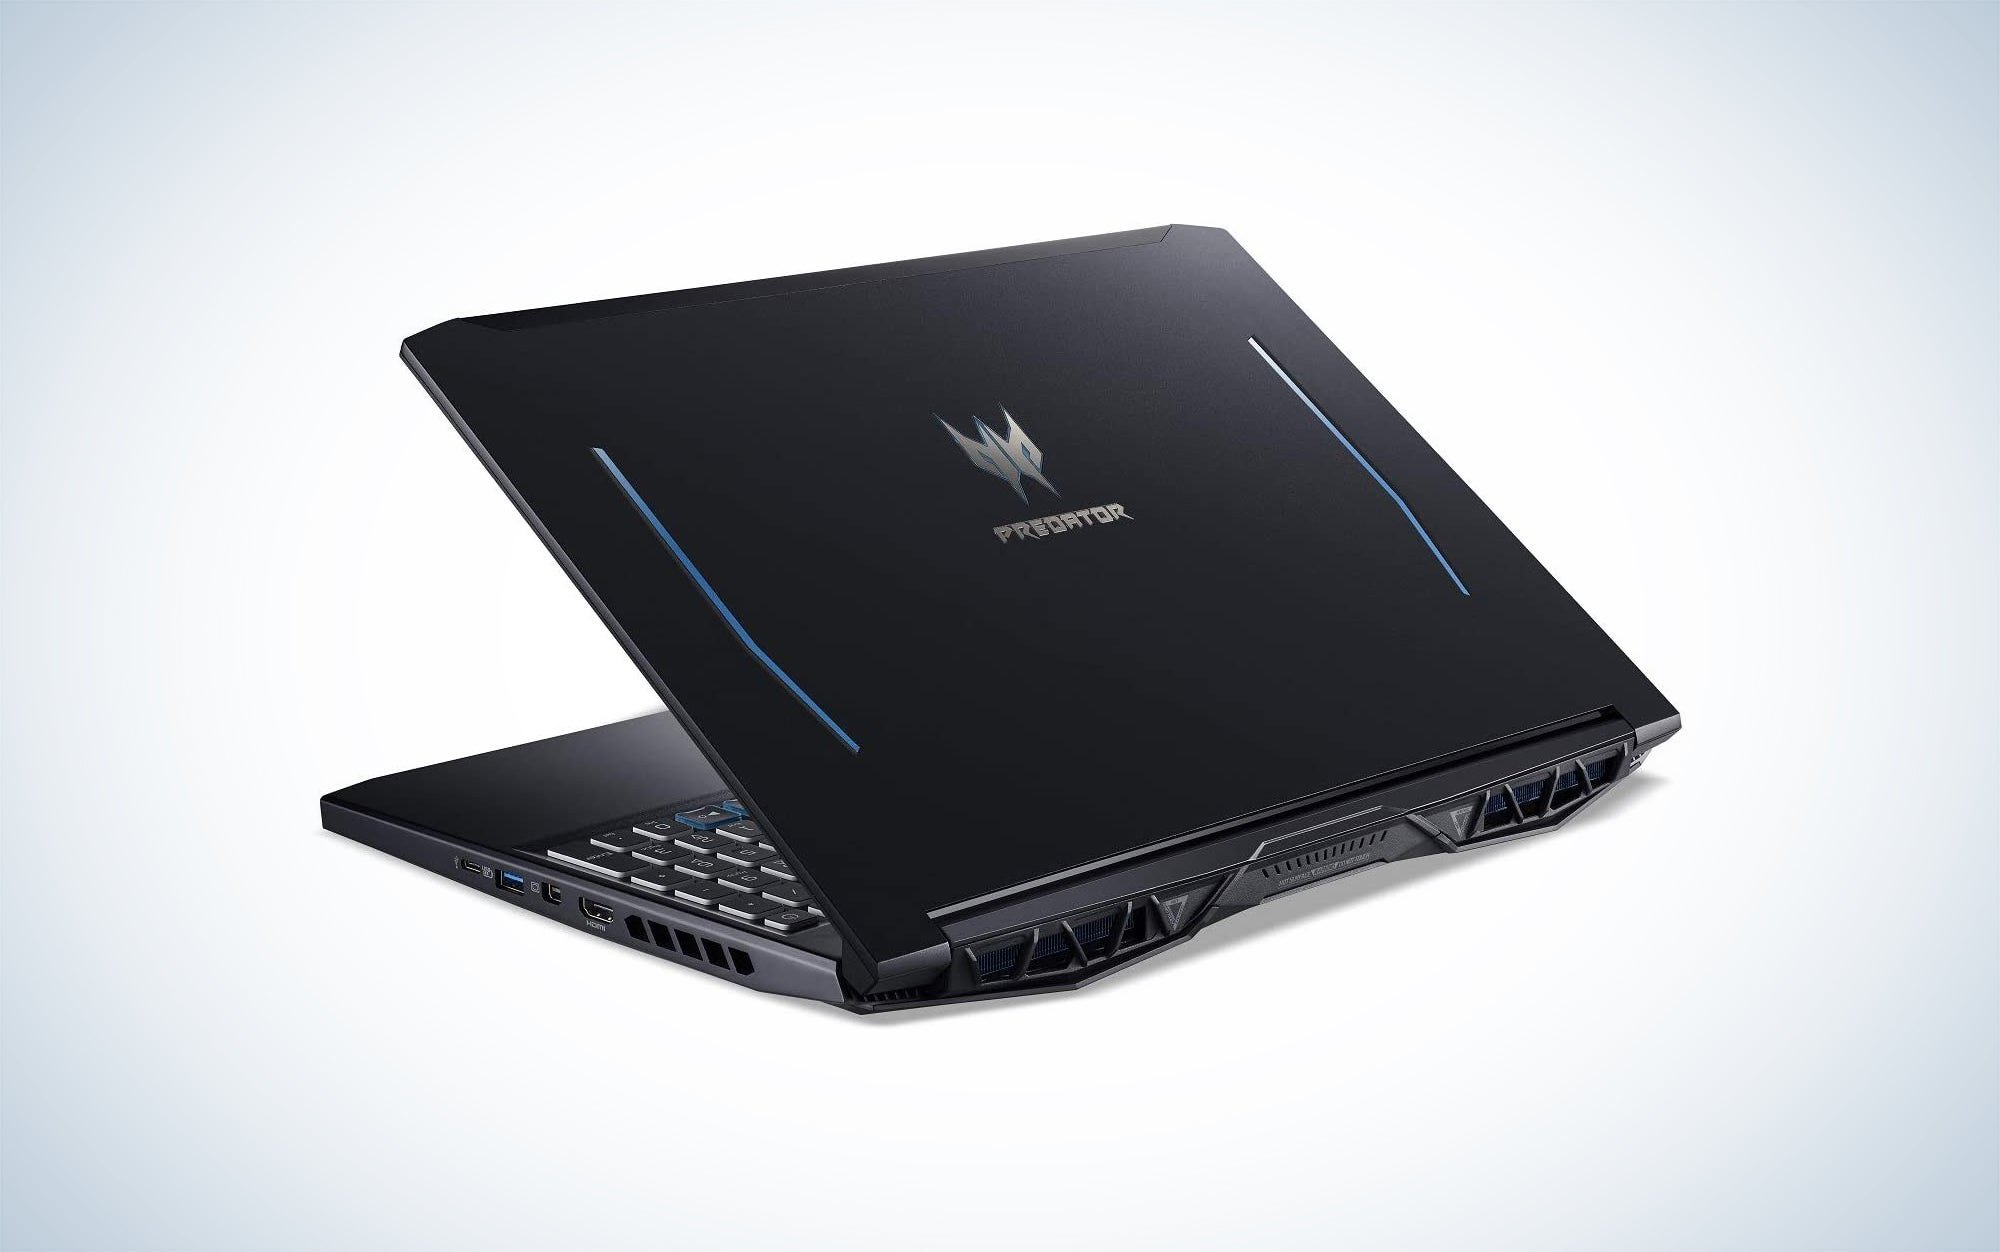 Acer Predator Helios 300 is one of the best Acer gaming laptops on the market.